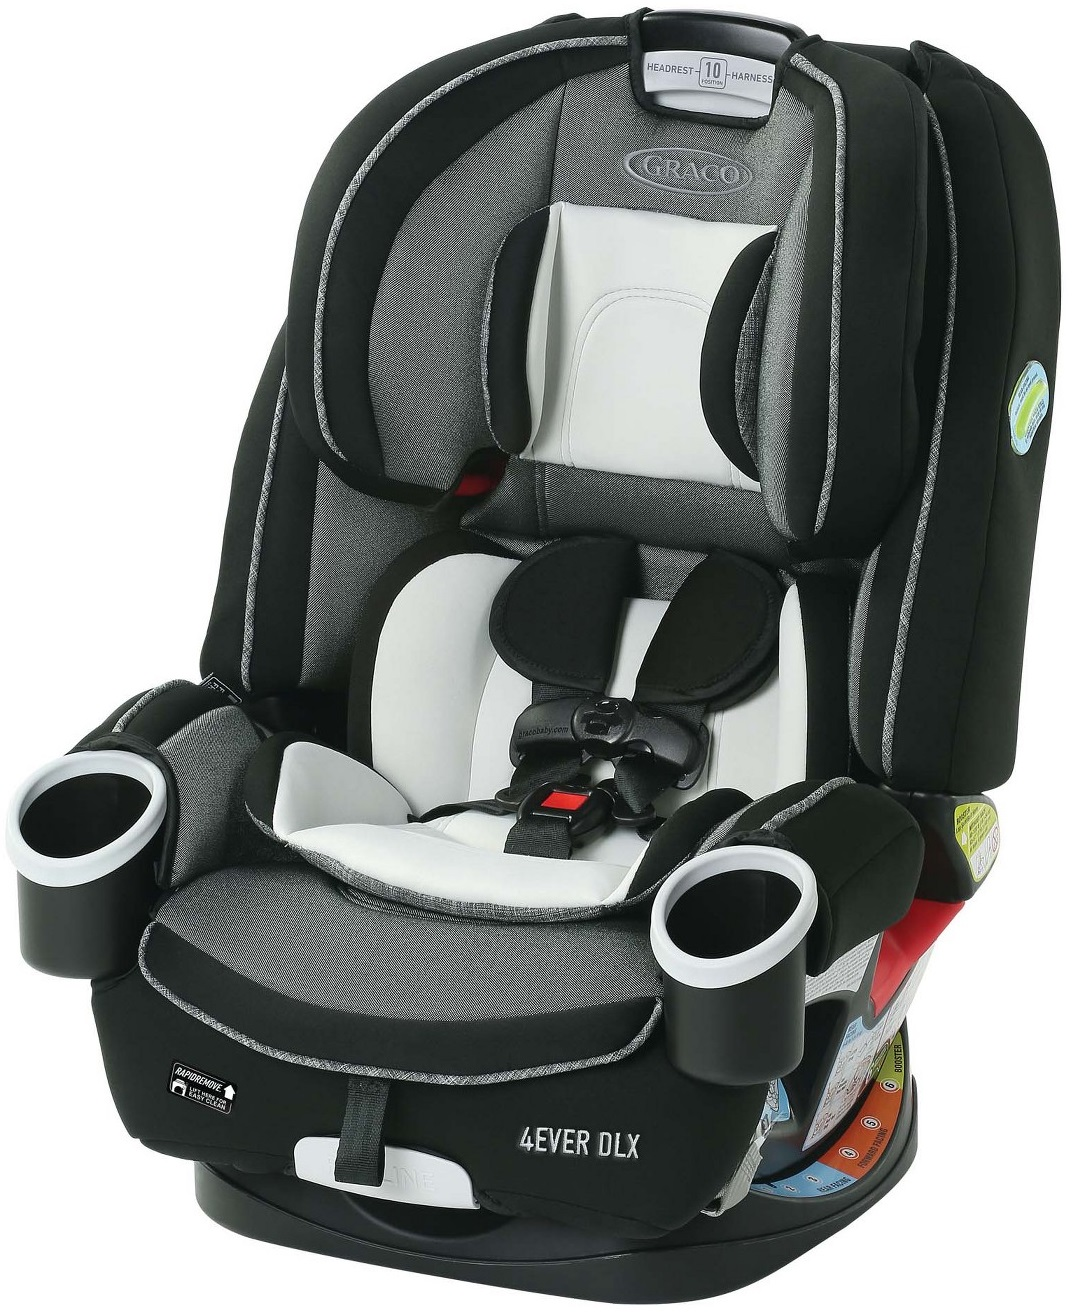 Graco 4ever Dlx Vs 4ever Differences Is There Any Significant